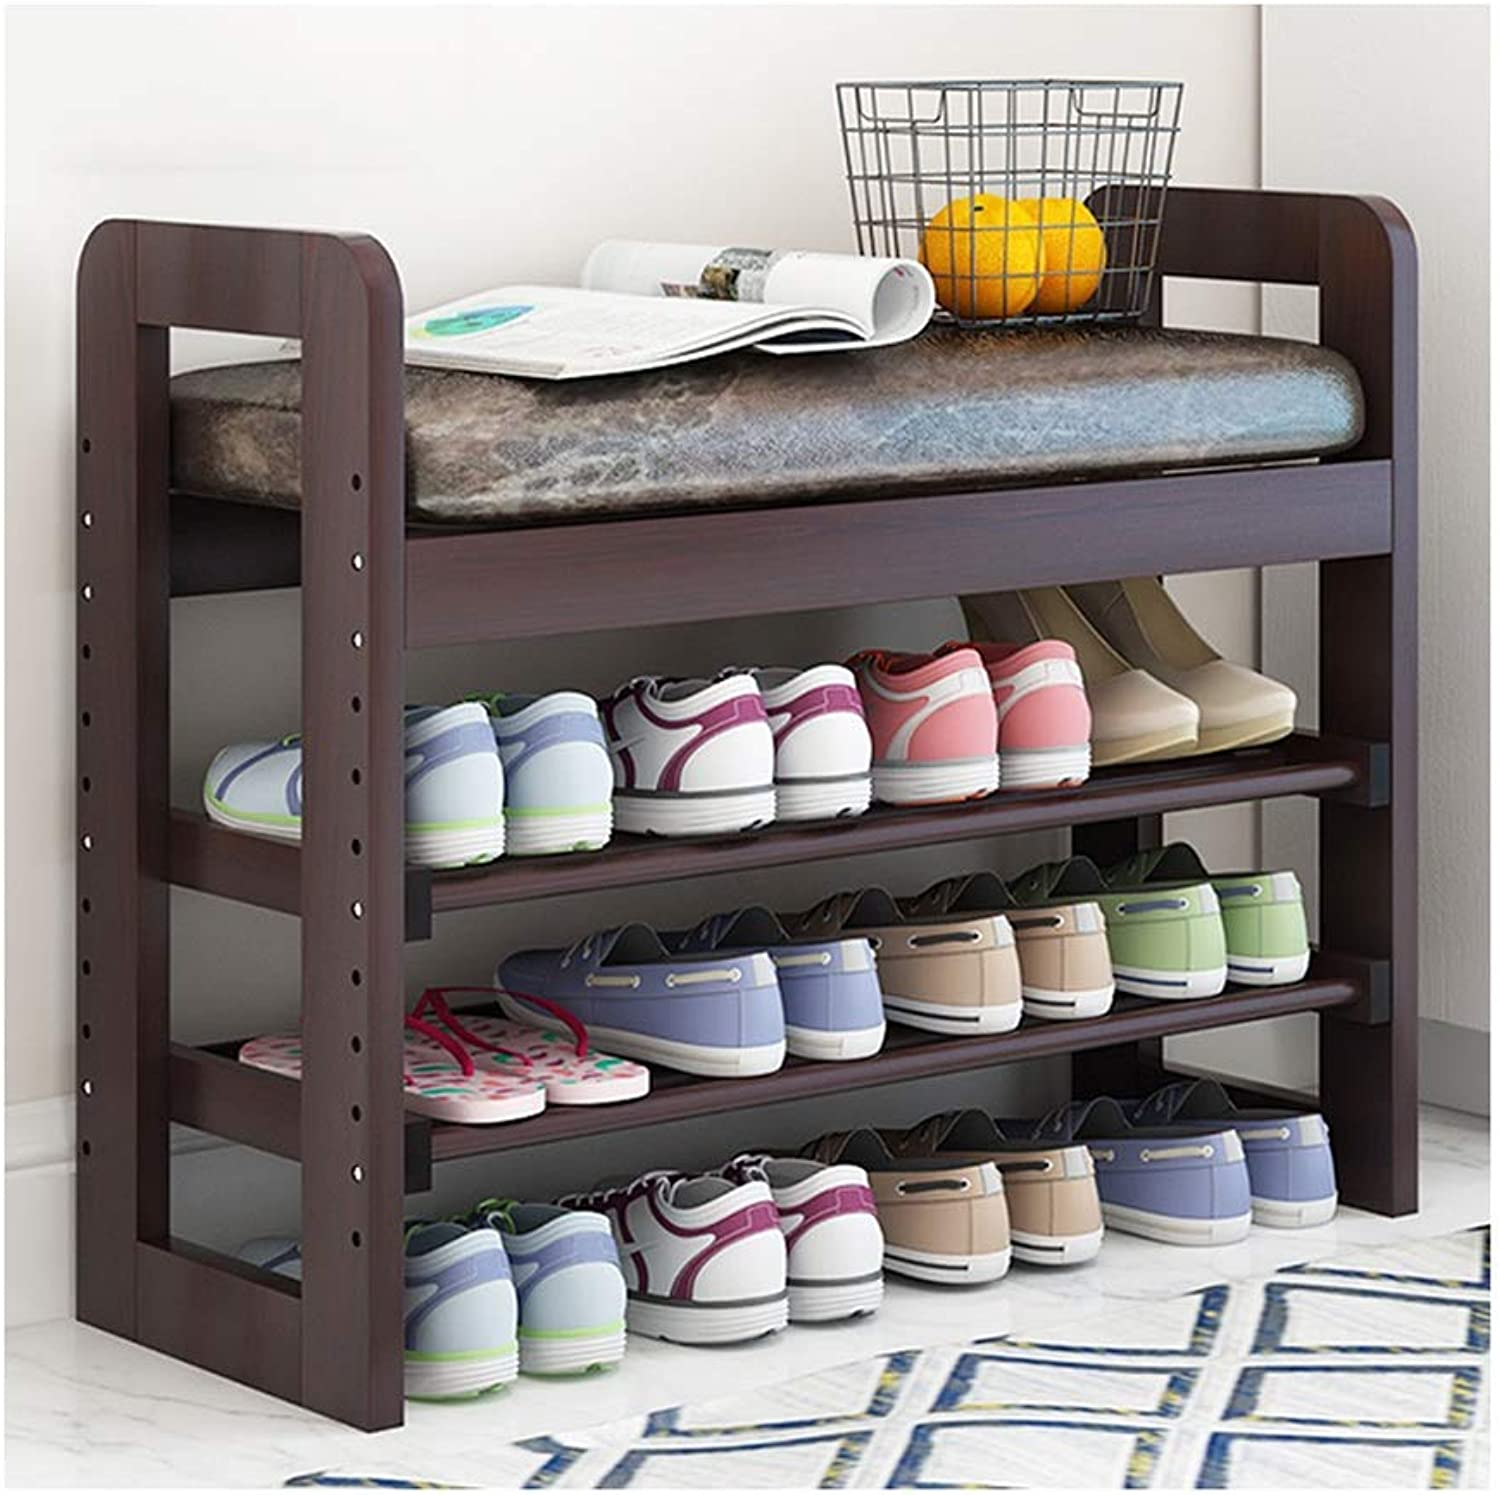 CAIJUN Footstool shoes Shelf Rack Solid Wood PU Cushion Height Adjustable Waterproof Assembly, 3 colors, 2 Sizes (color   C, Size   71x30x60cm)